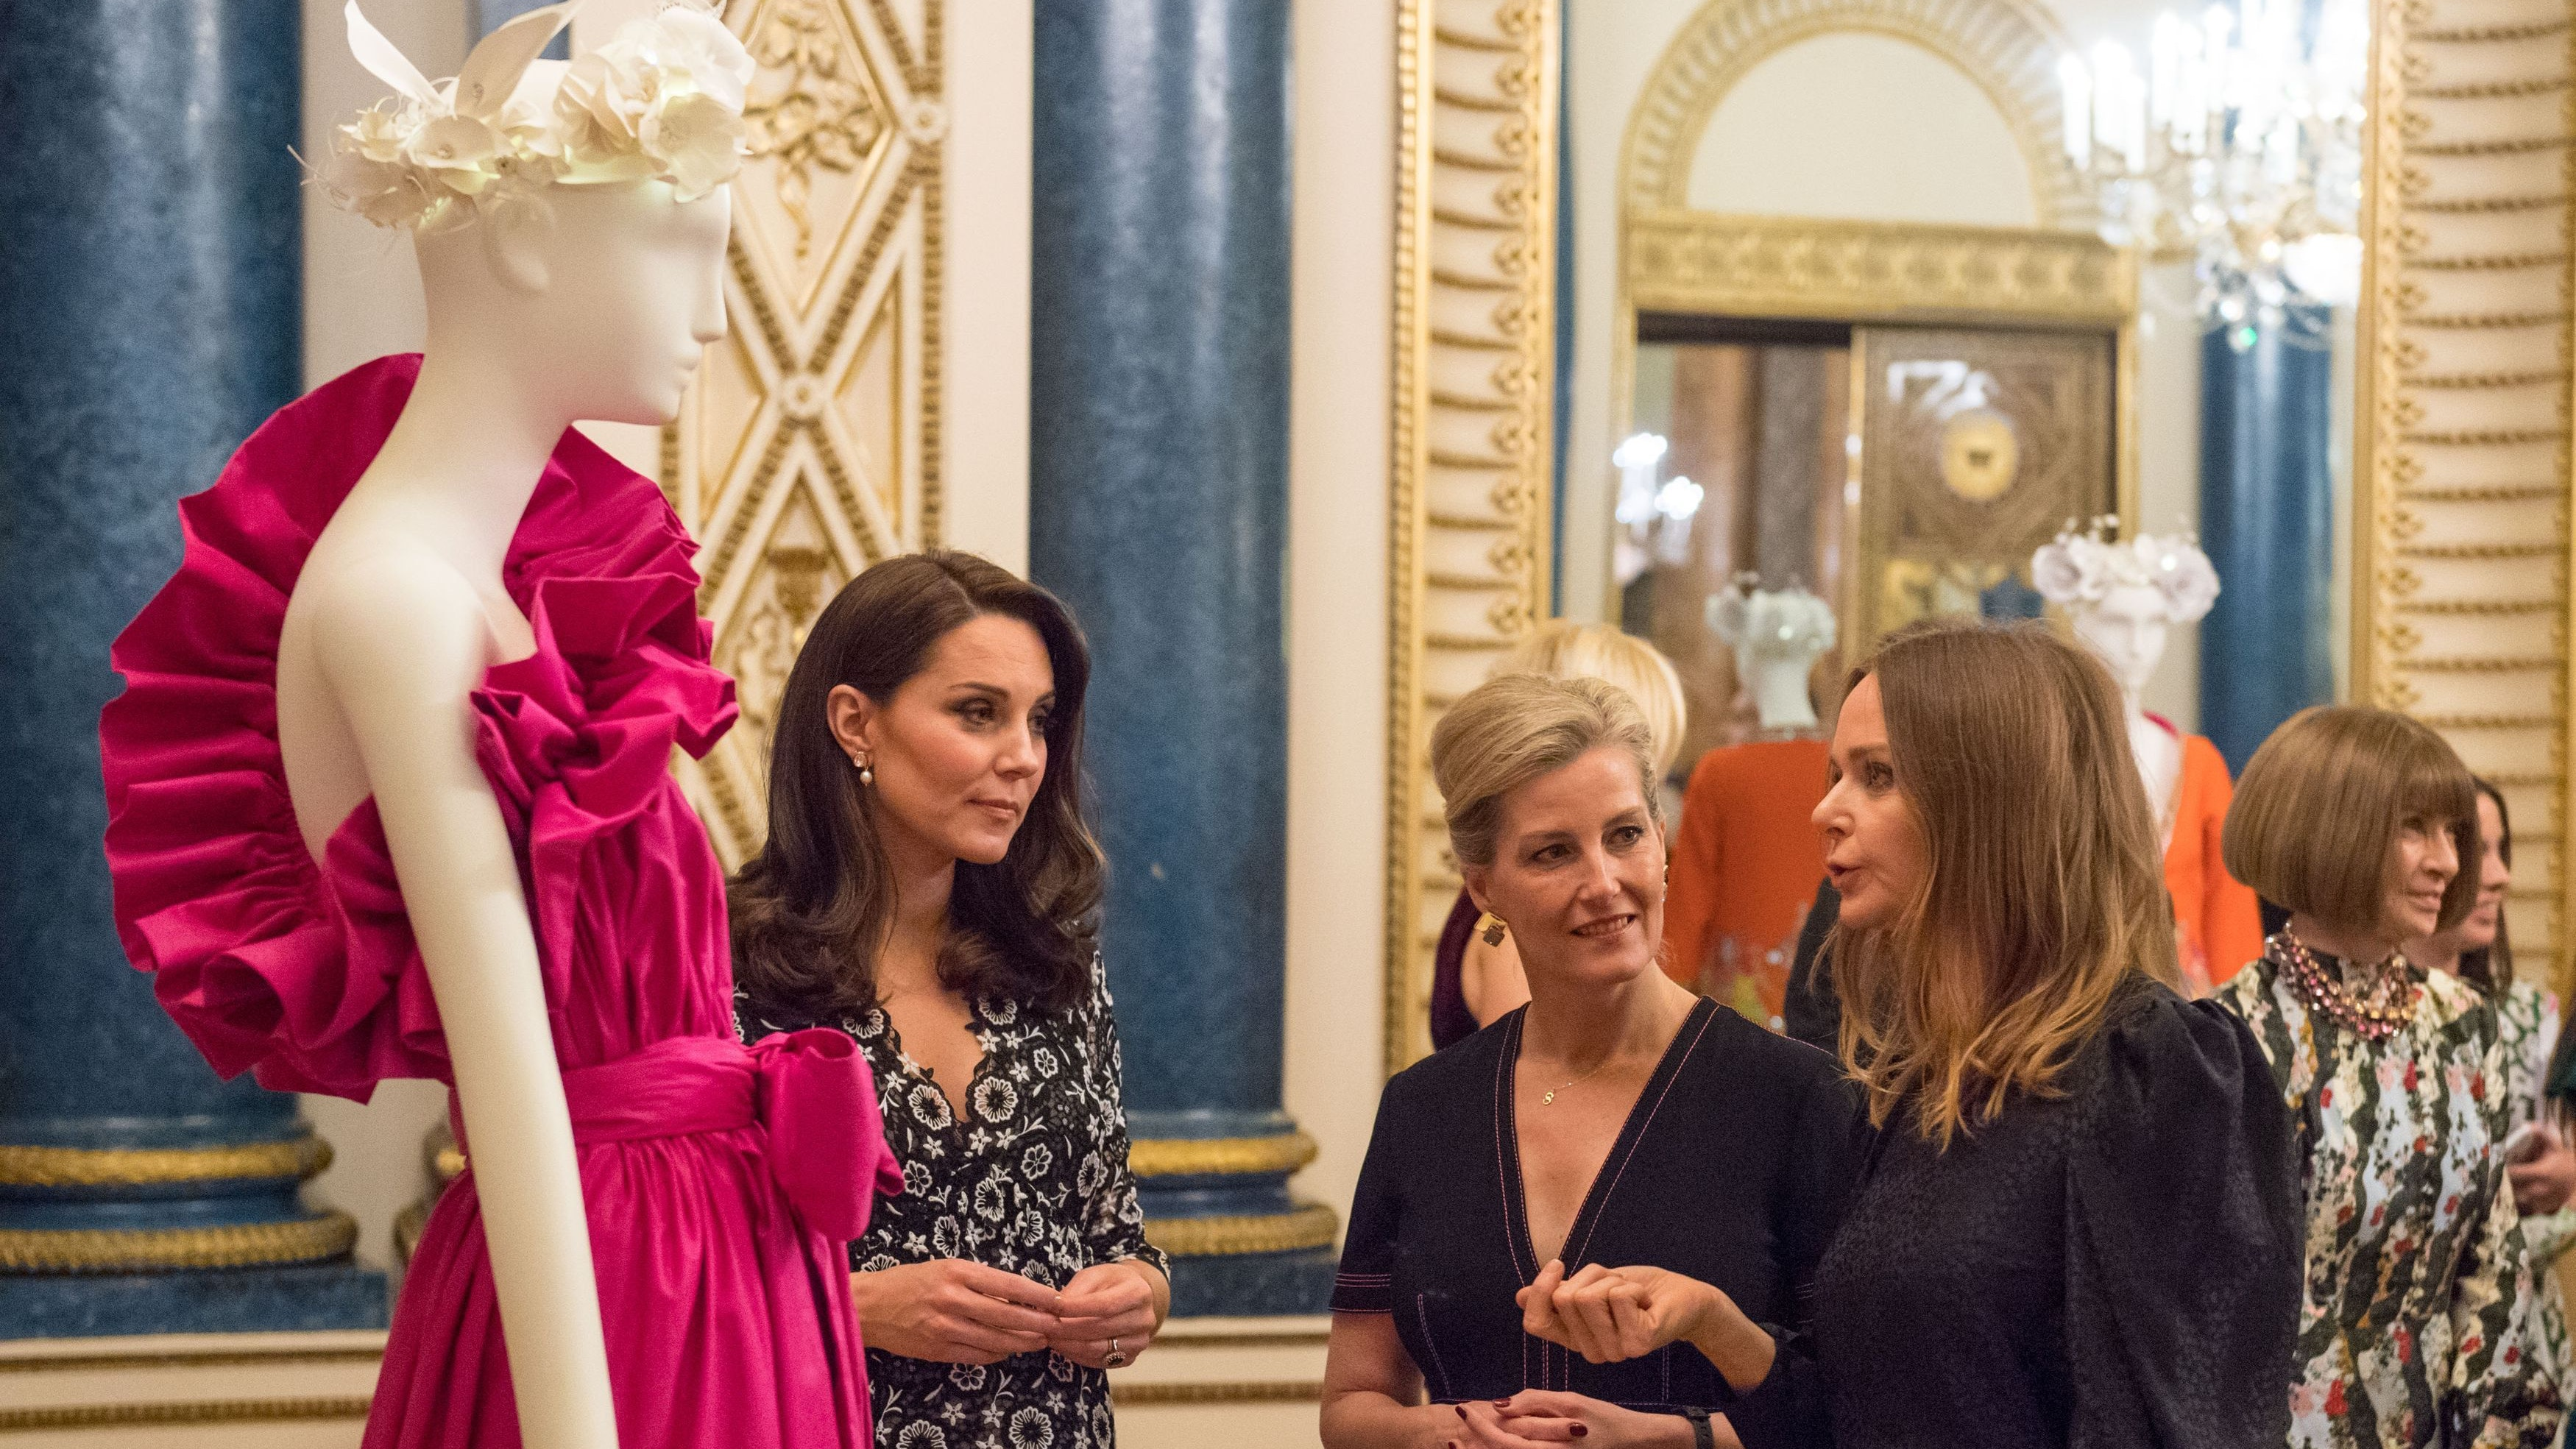 Behind the scenes at fashion's very royal night out at Buckingham Palace